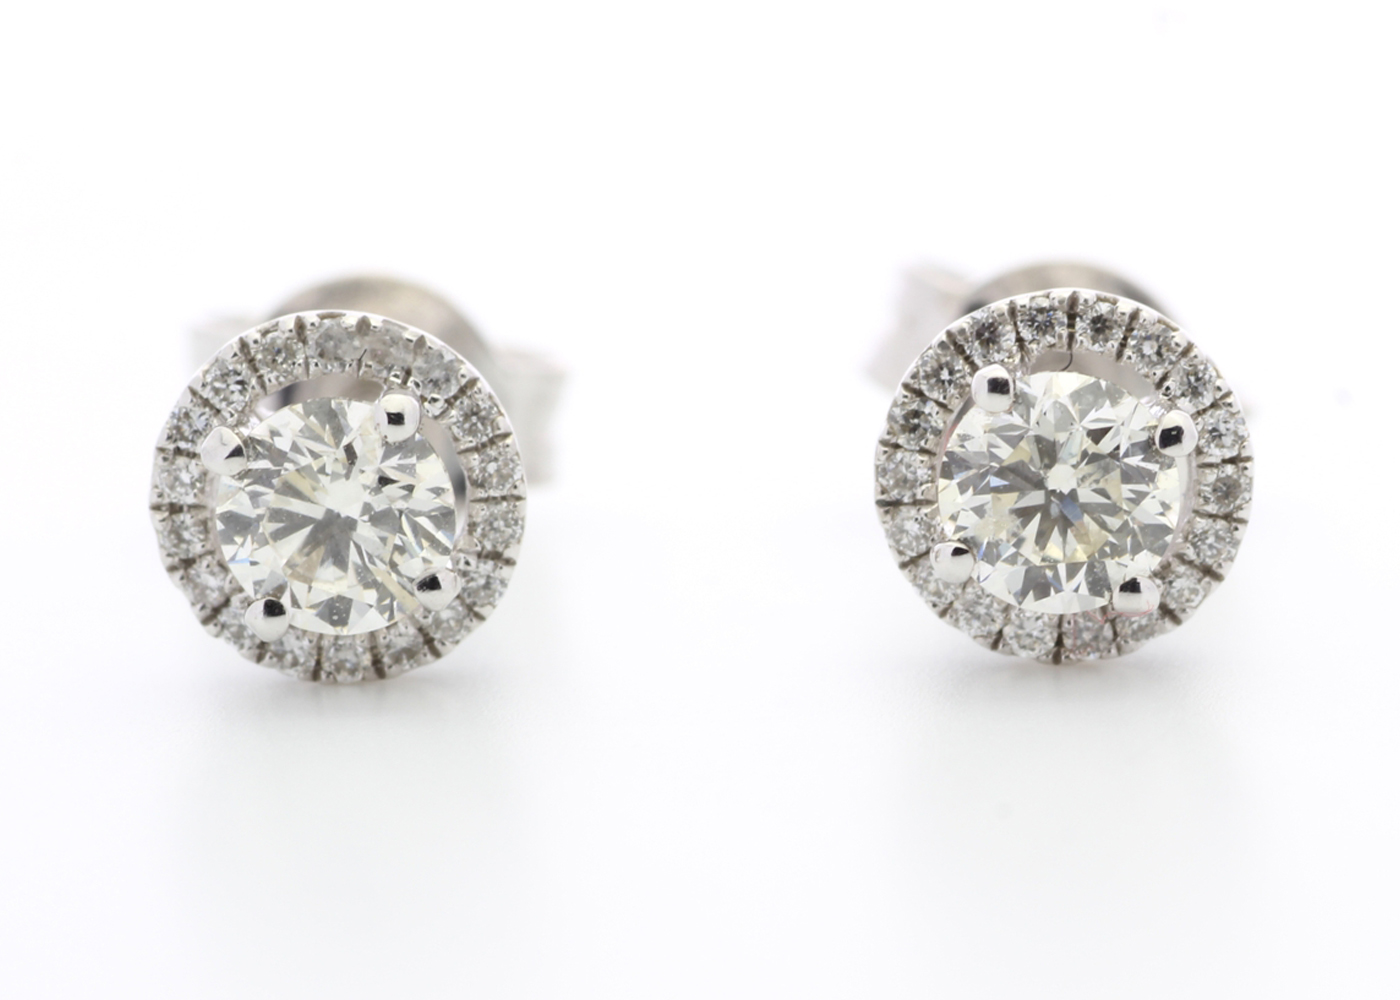 Lot 33 - 18ct White Gold Halo Set Earrings 0.65 Carats